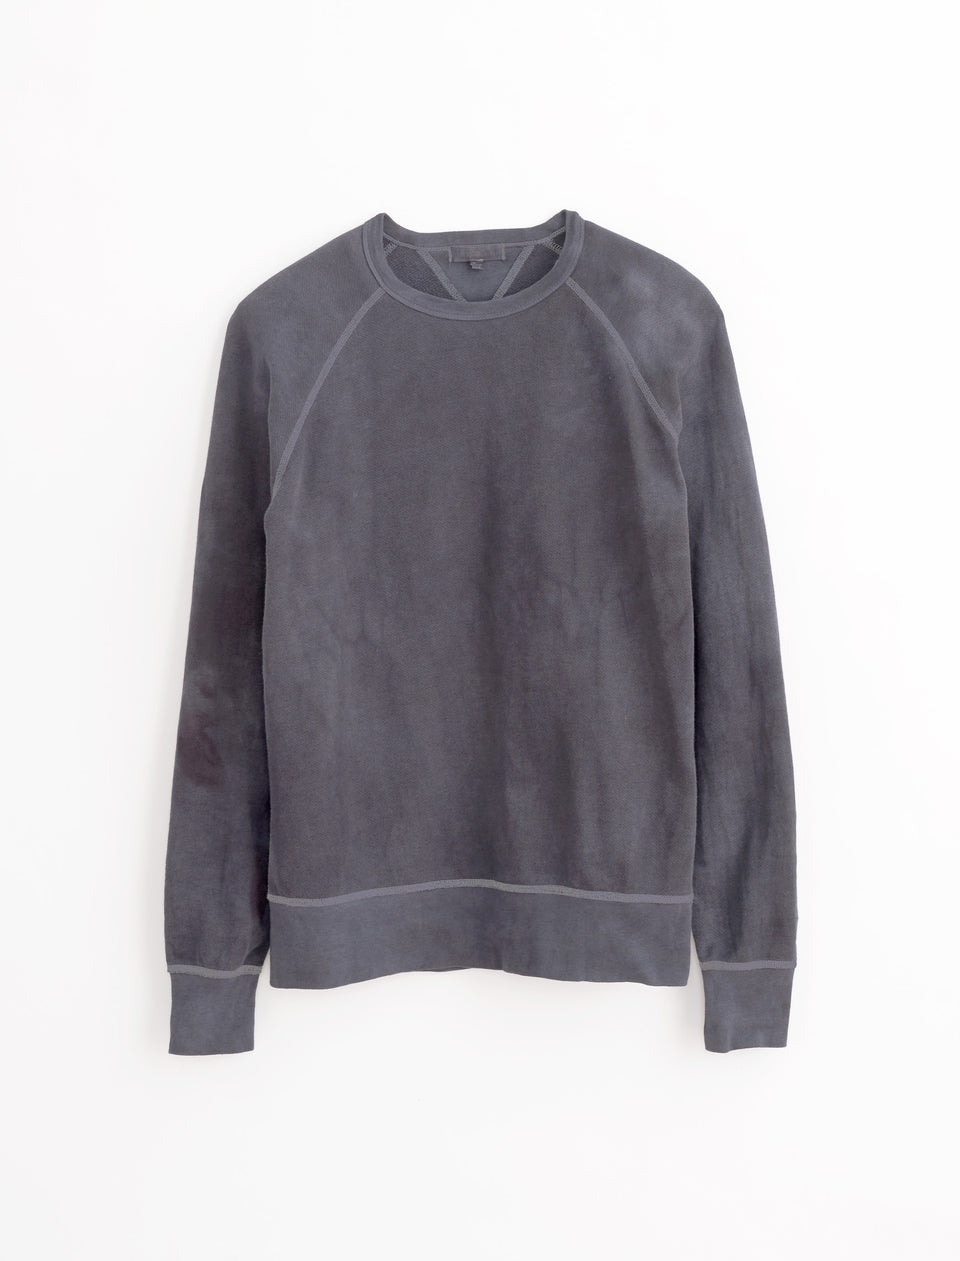 Alex Mill Editions: Natural Dye Sweatshirt in Botanical Faded Midnight